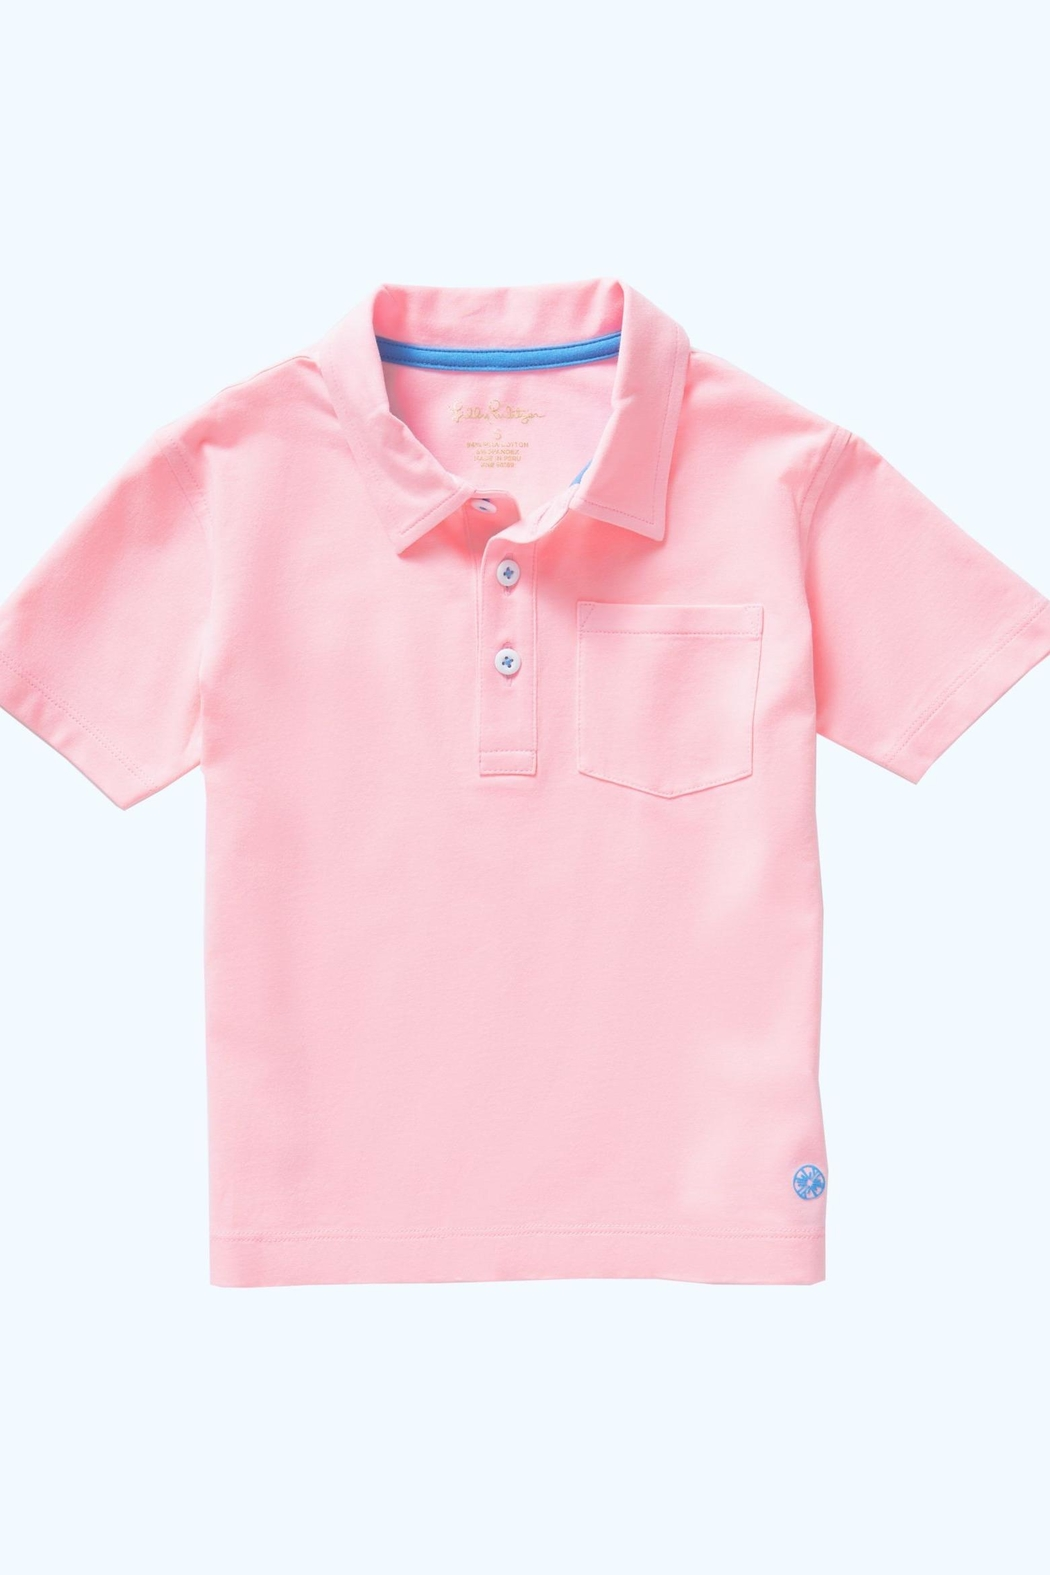 e190e8691246b9 Lilly Pulitzer Boys Polo from Sandestin Golf and Beach Resort by ...